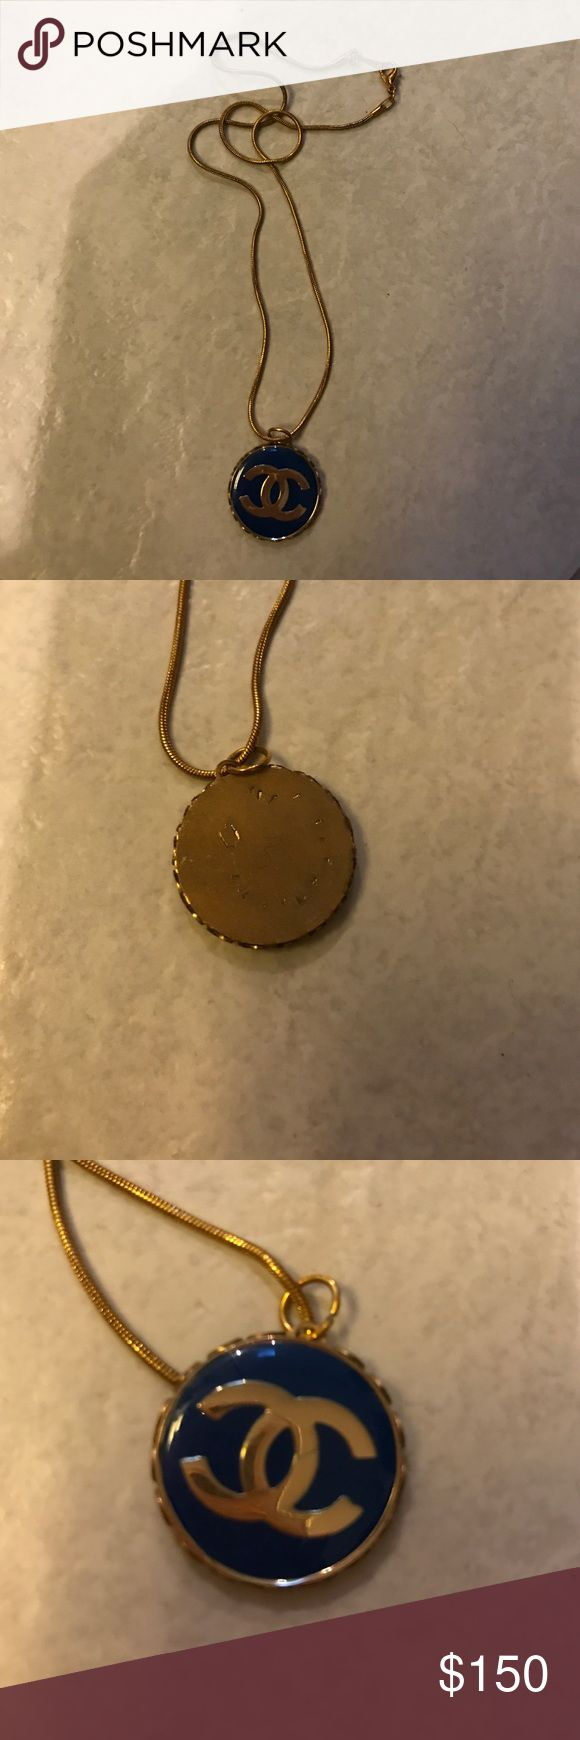 CHANEL necklace Vintage necklace in almost perfect condition. Chain is not authentic which is why the price is so low. This was an authentic CHANEL button handmade into a necklace. CHANEL Jewelry Necklaces